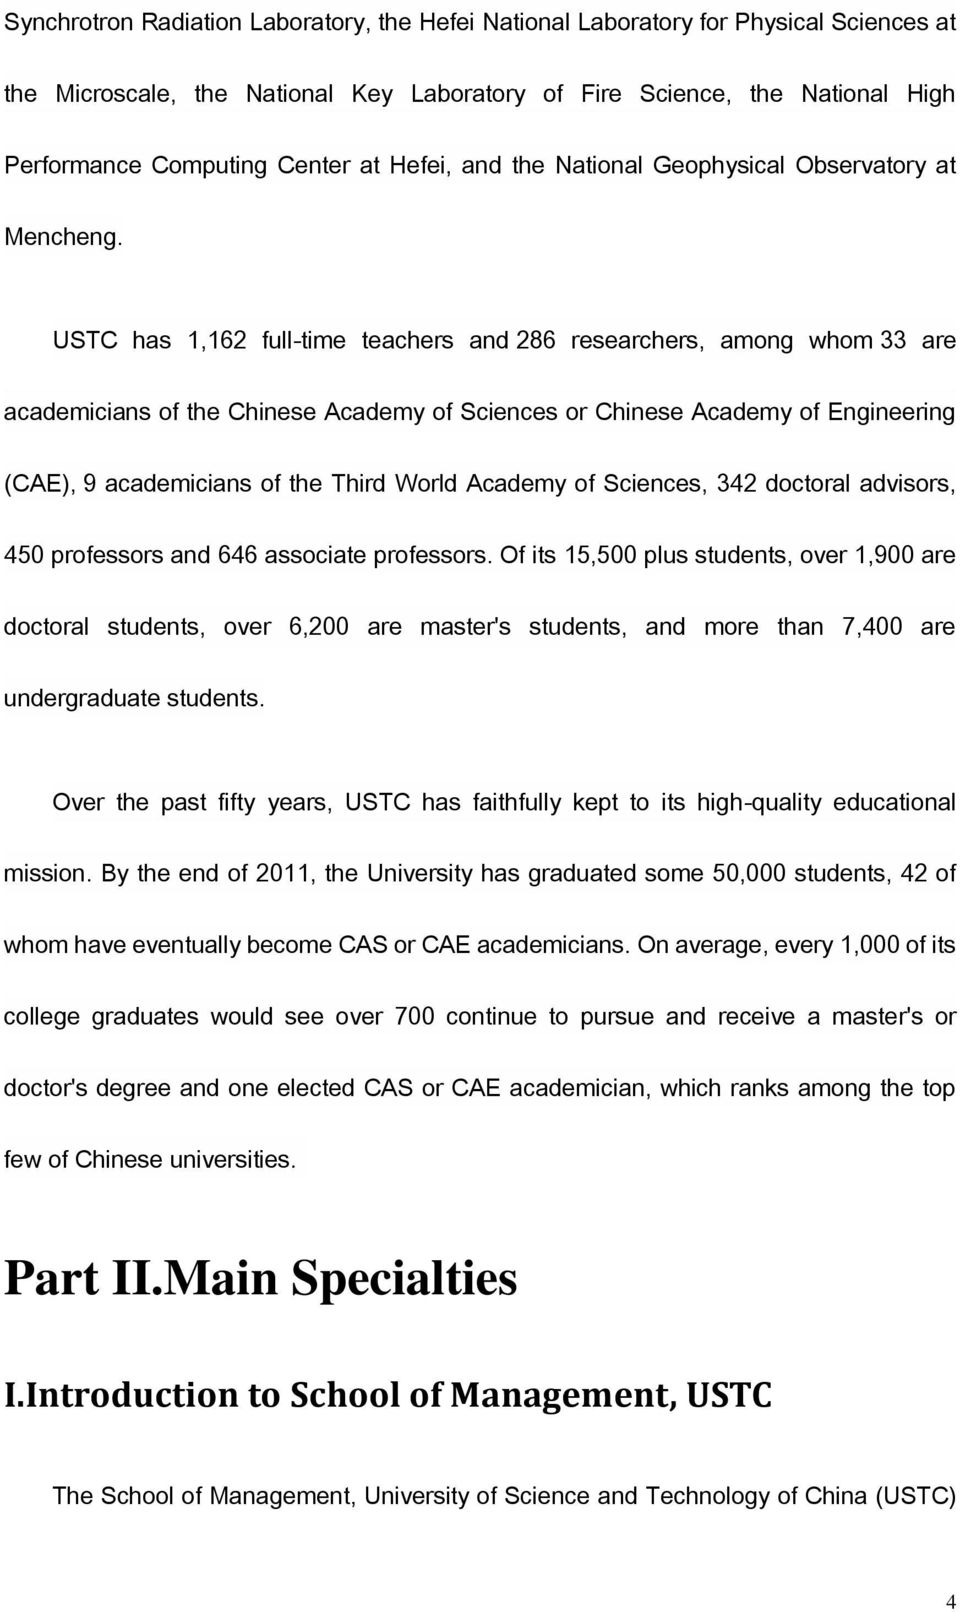 USTC has 1,162 full-time teachers and 286 researchers, among whom 33 are academicians of the Chinese Academy of Sciences or Chinese Academy of Engineering (CAE), 9 academicians of the Third World